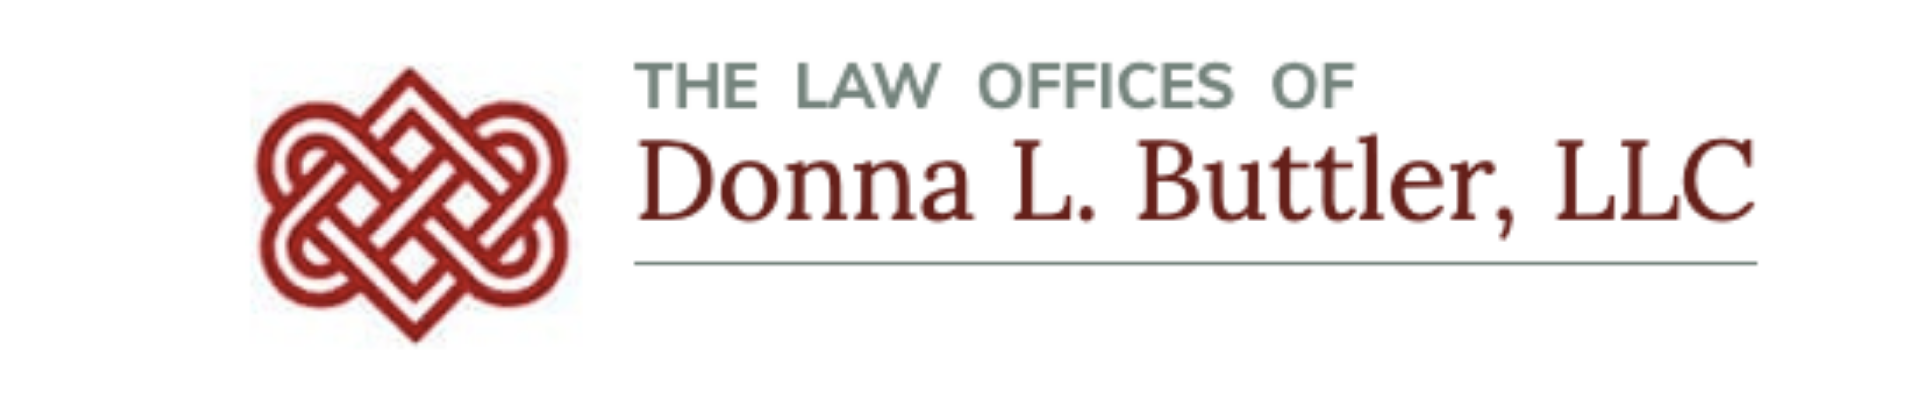 The Law Offices of  Donna L. Buttler Logo